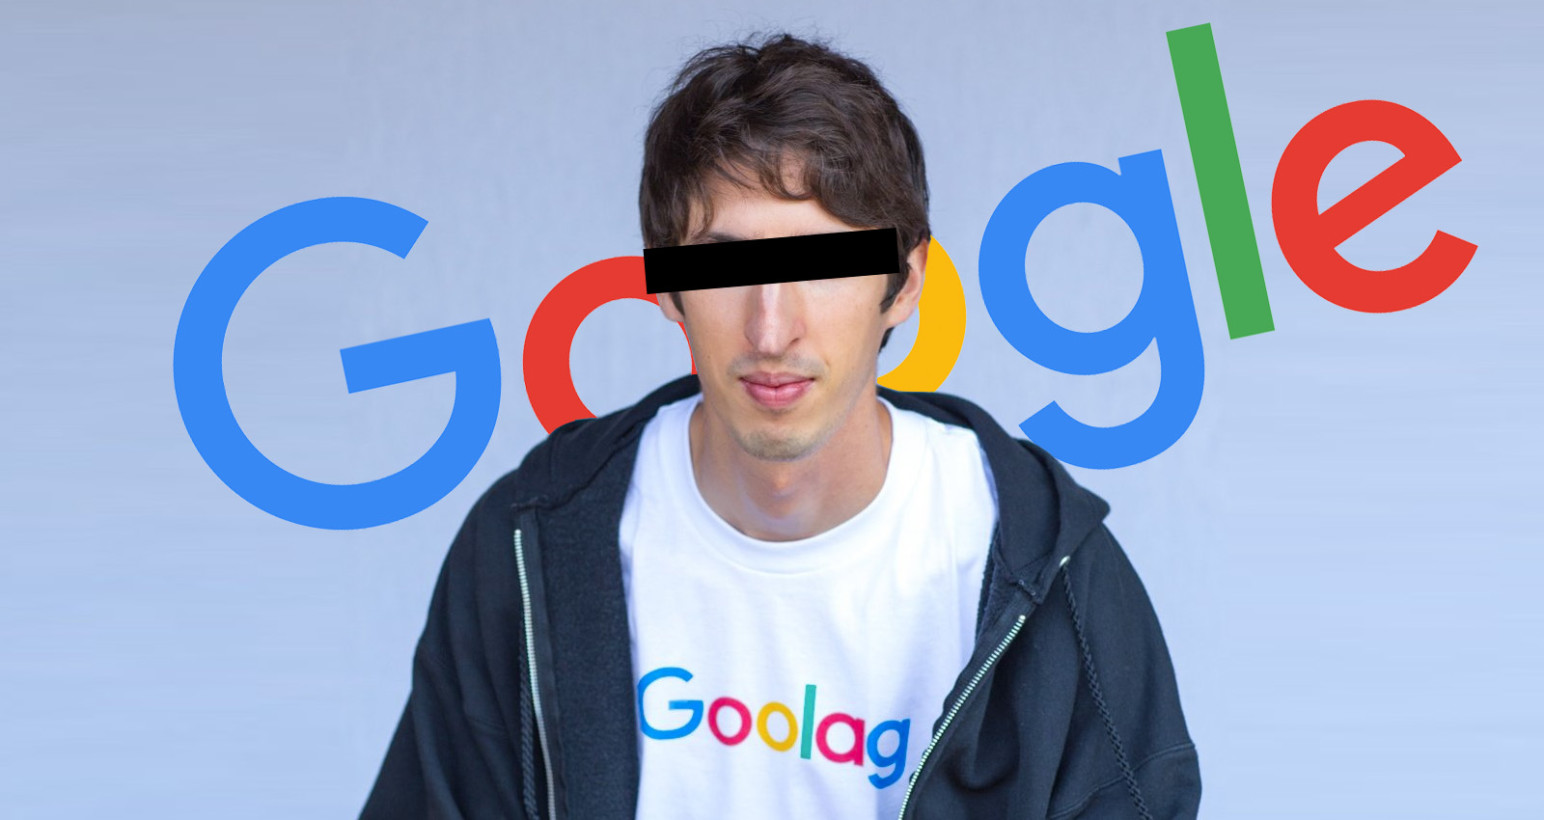 The alt-right will protest the firing of James Damore with a 'March on Google'